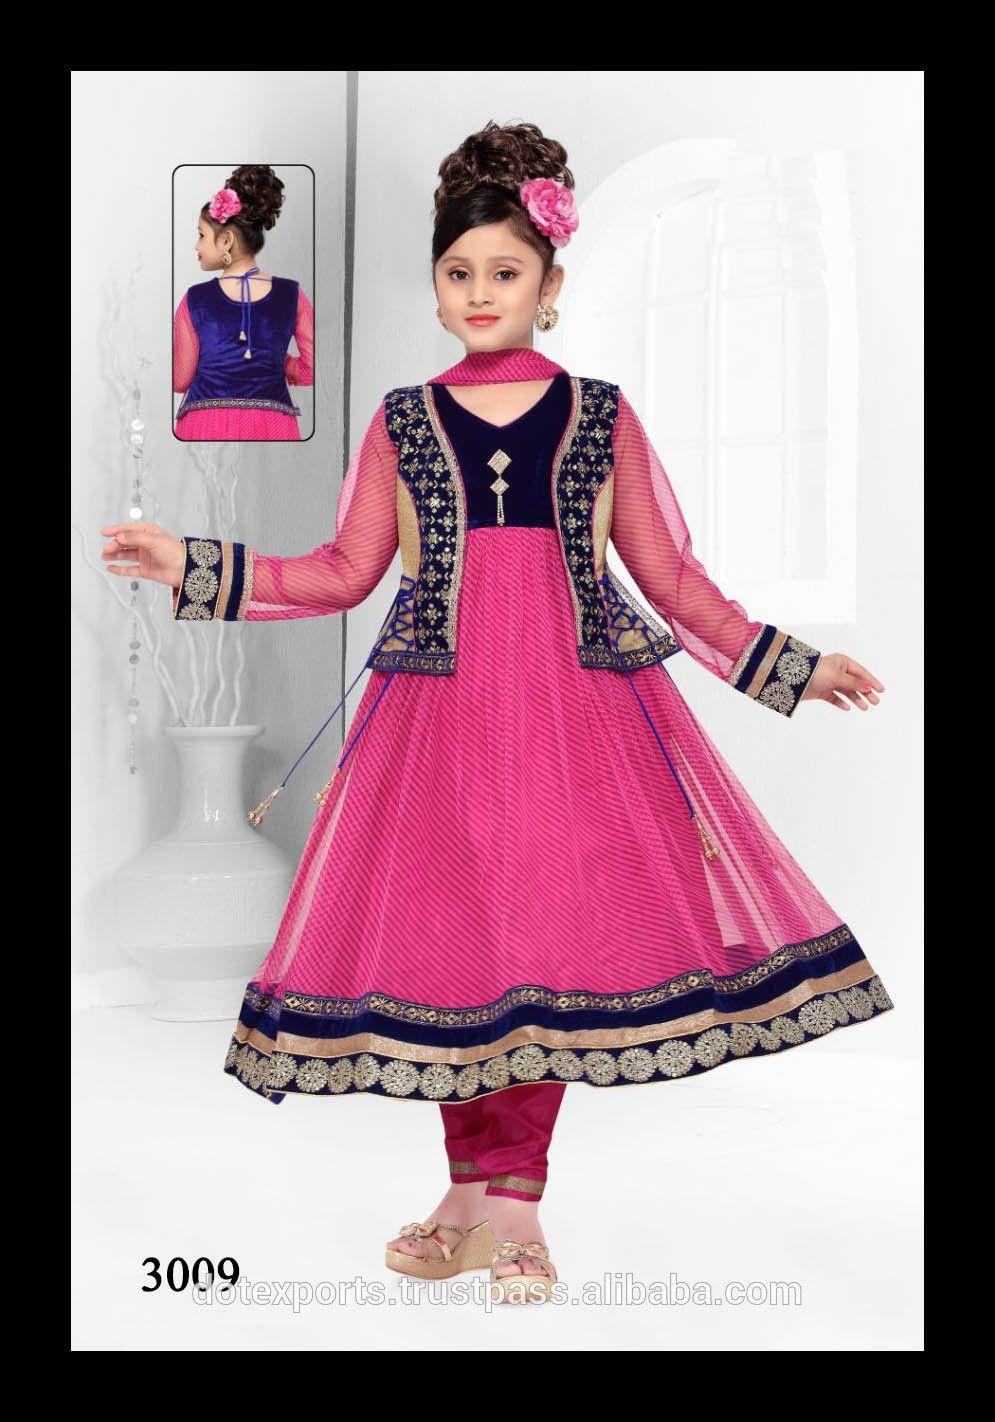 Lehenga Choli Designs For Girls - Buy Kids Lehenga Designs,Kids ...